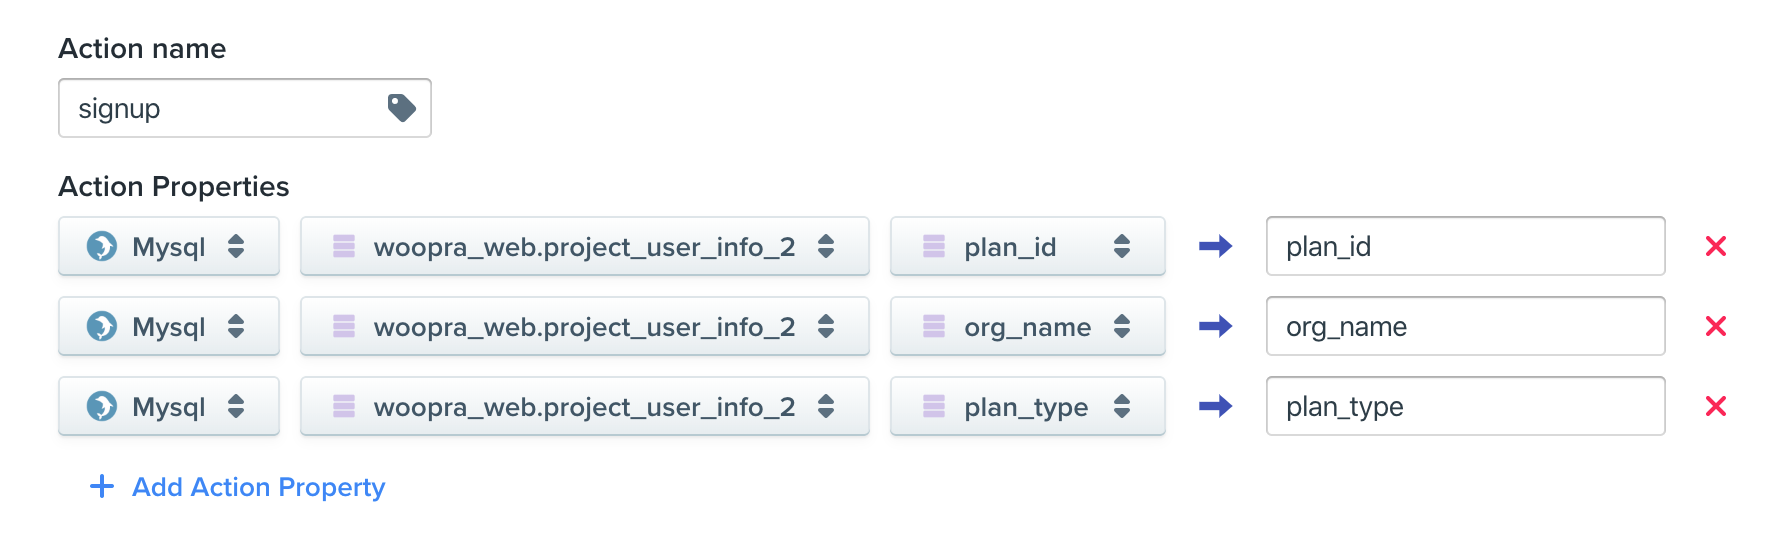 Here we created the 'signup' event with the properties: plan_id, org_name, and plan_type.